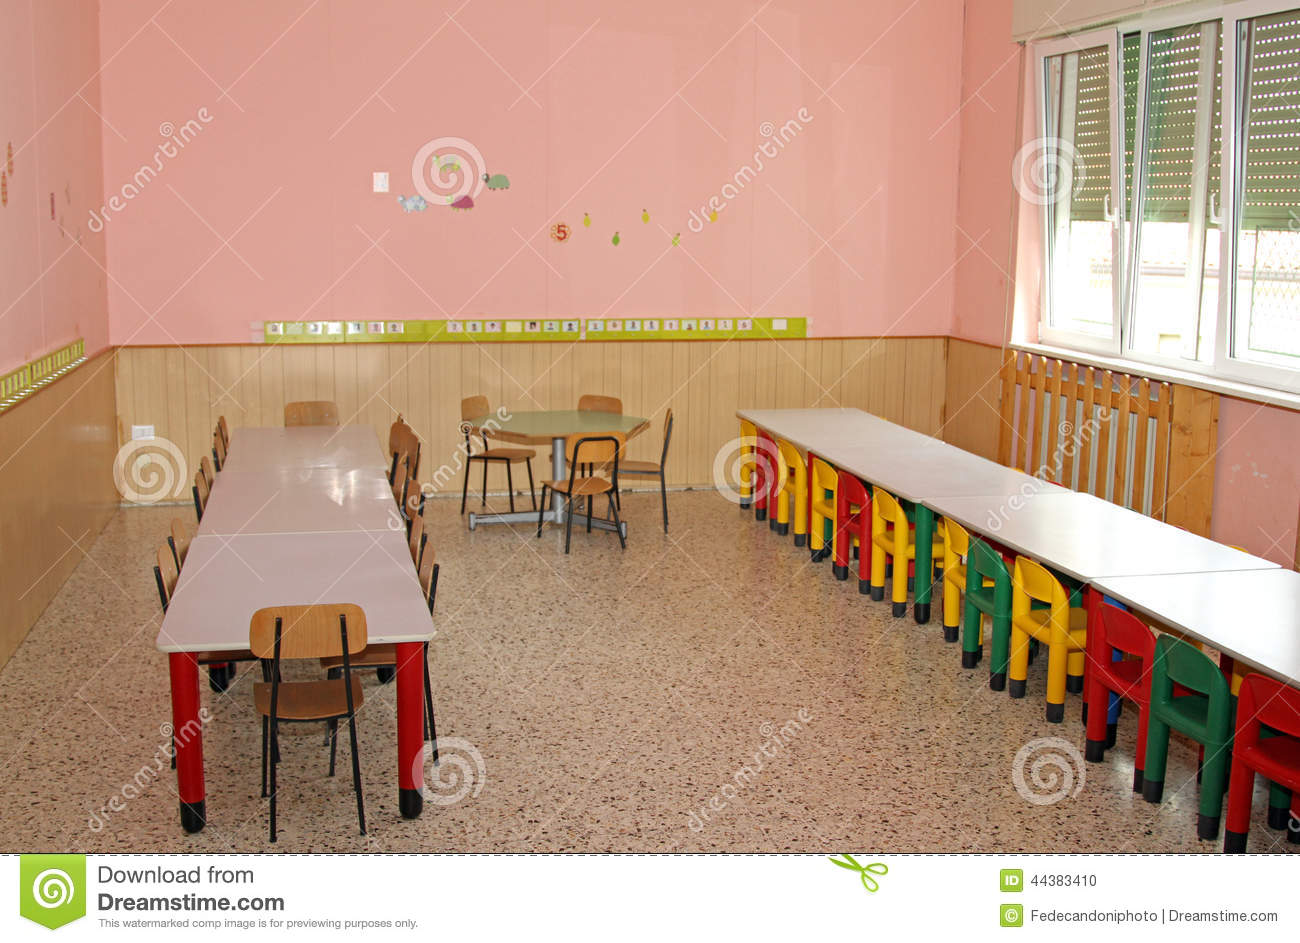 Tables And Chairs In The Dining Hall Of School Canteen A